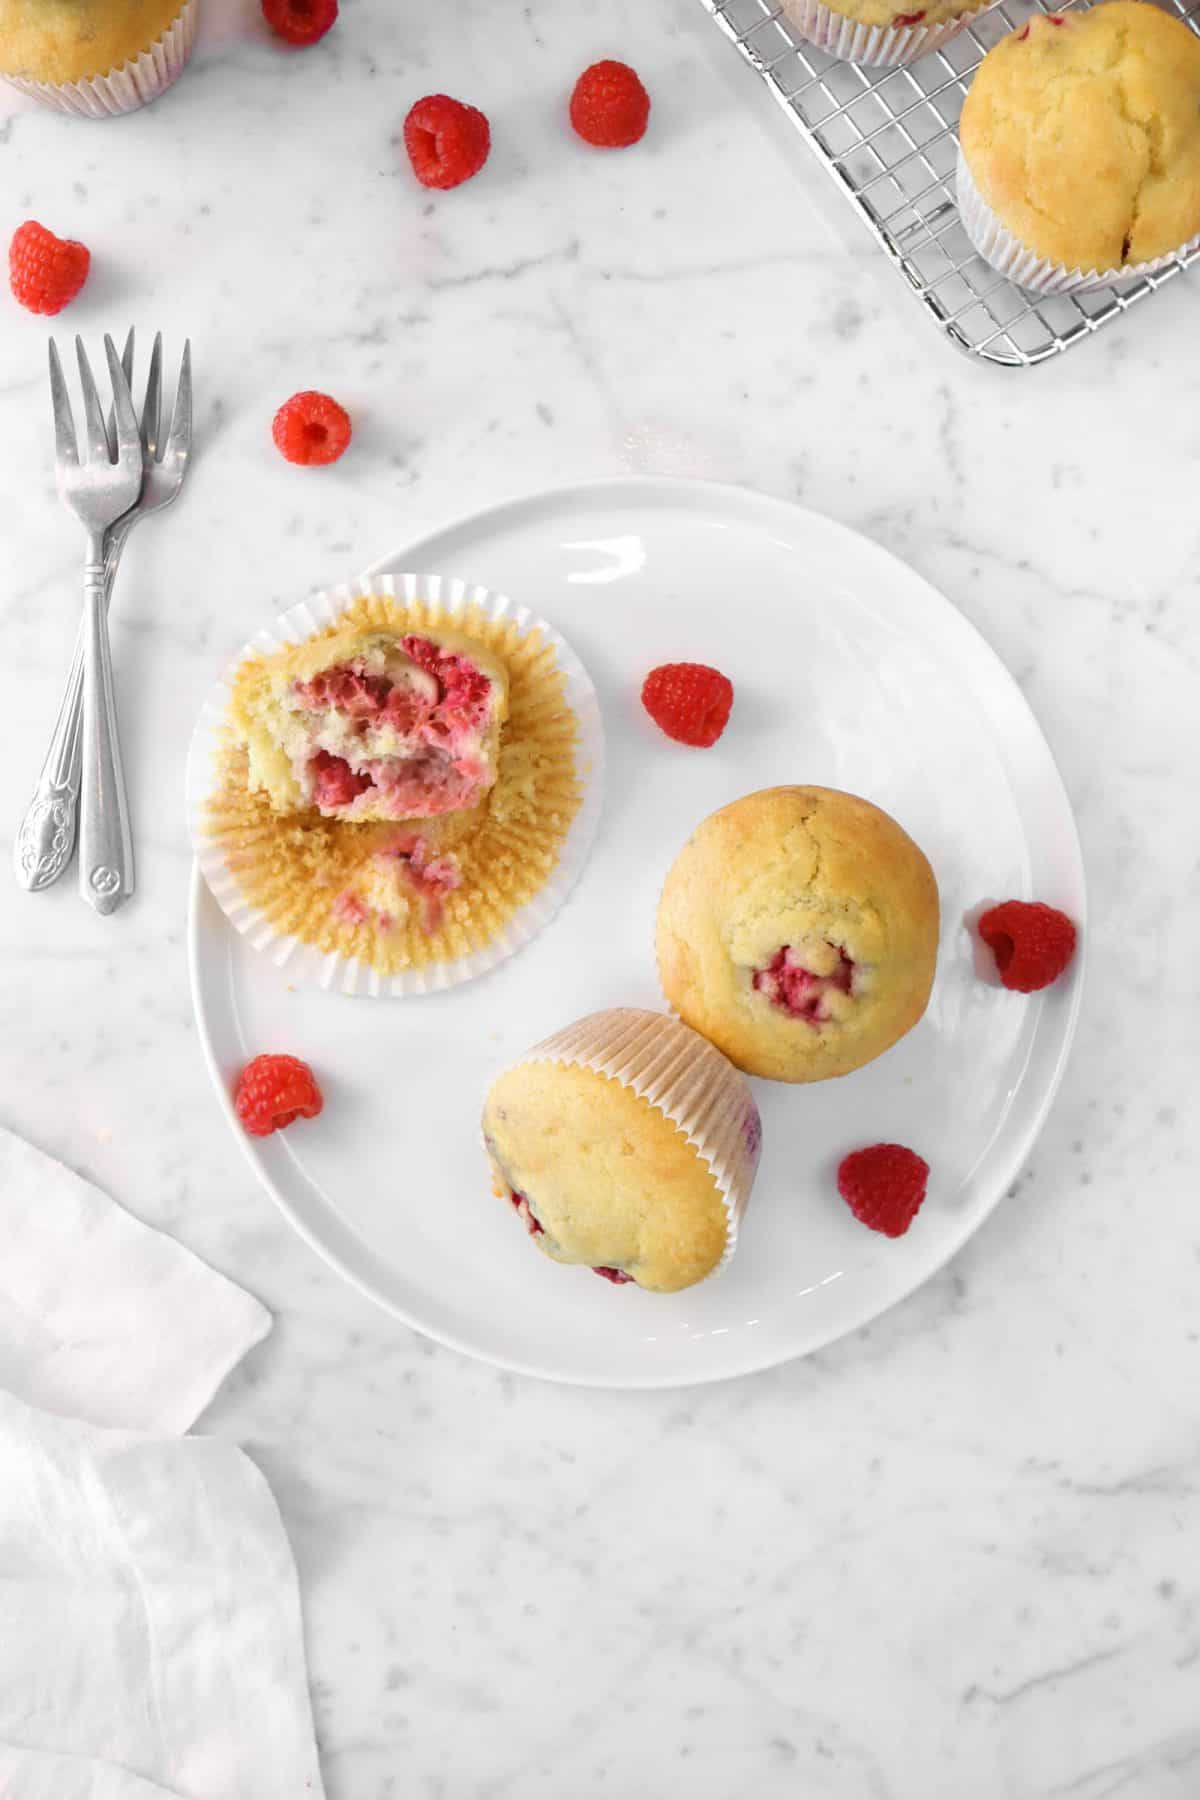 three muffins on a white plate with raspberries, two forks, and a napkin